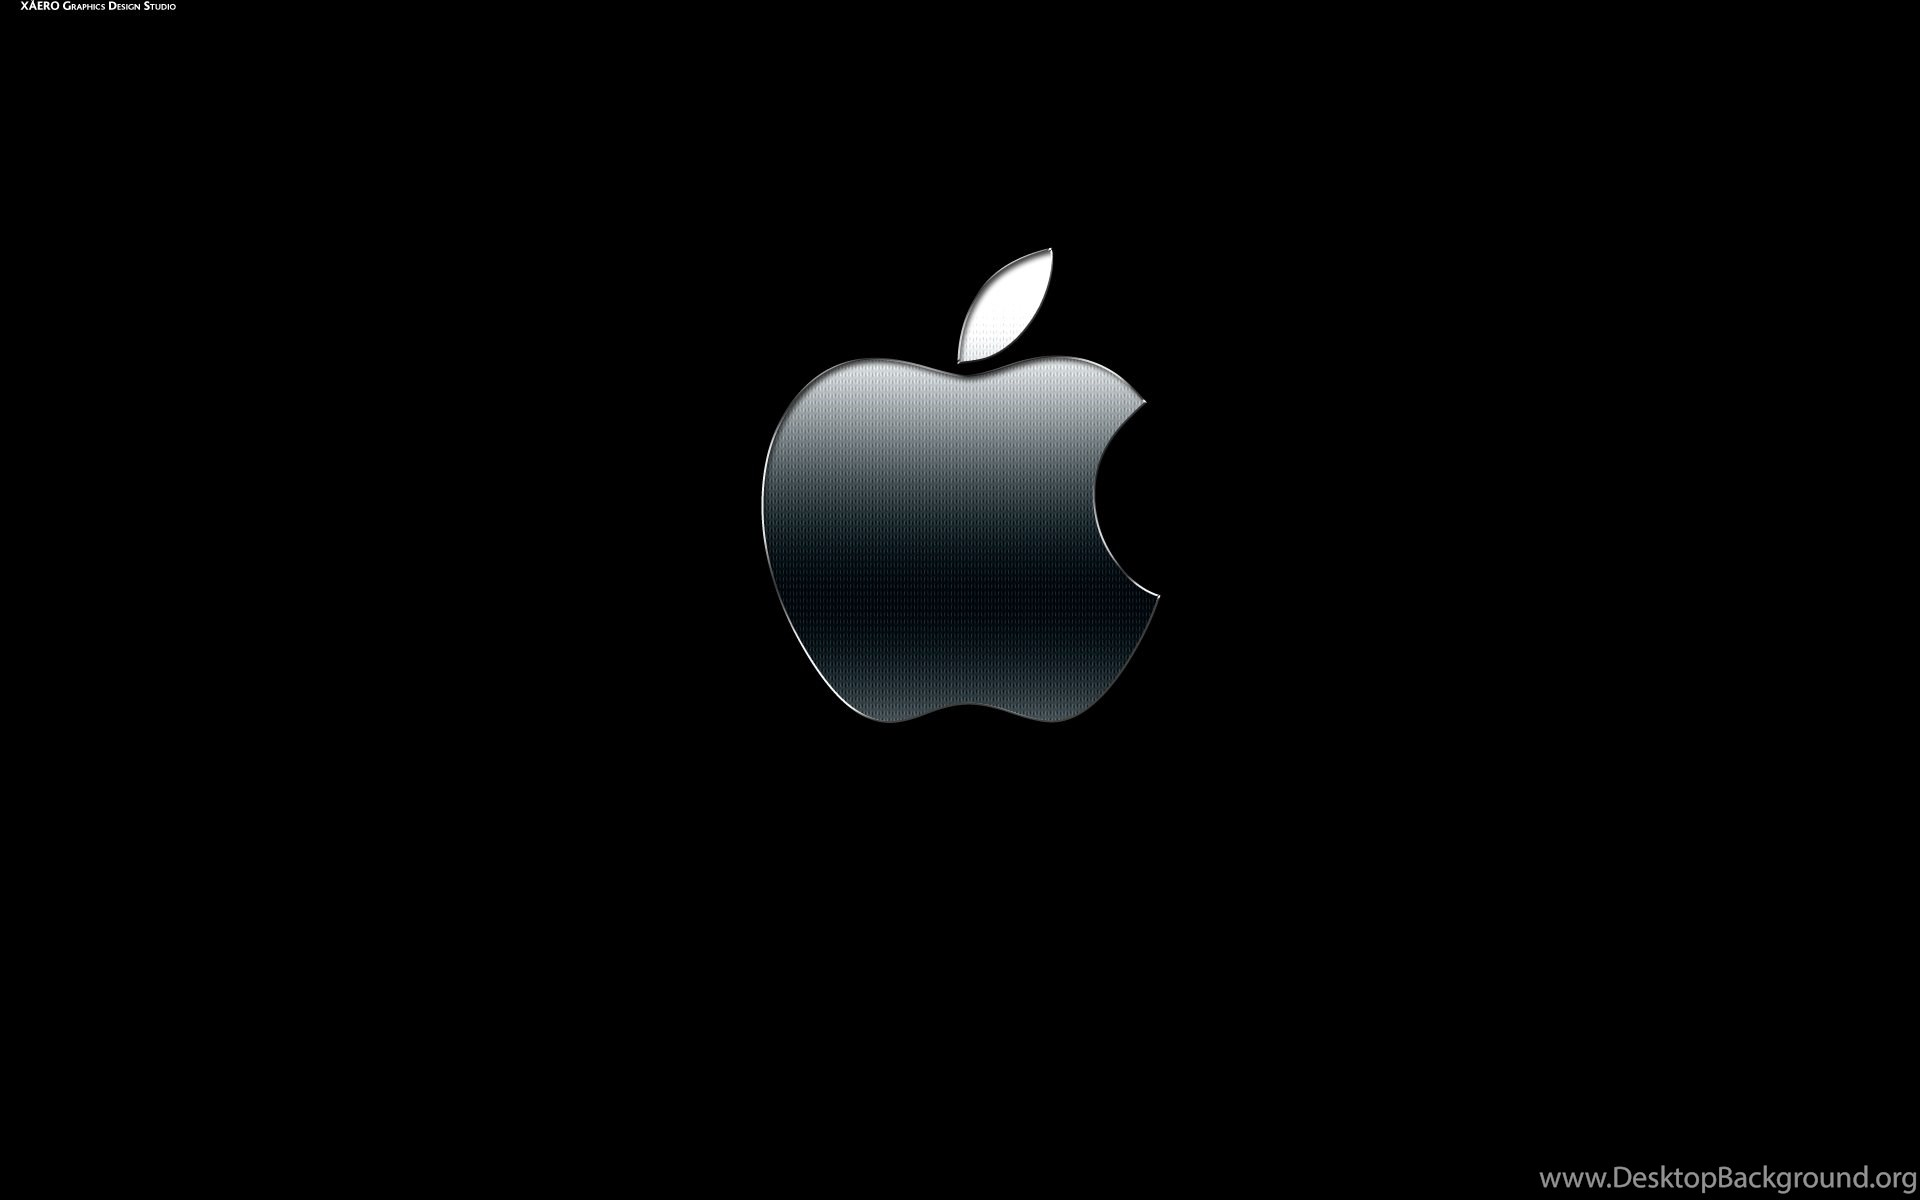 Cool Wallpapers Apple Live Wallpapers Hd For Windows 7 Desktop Background